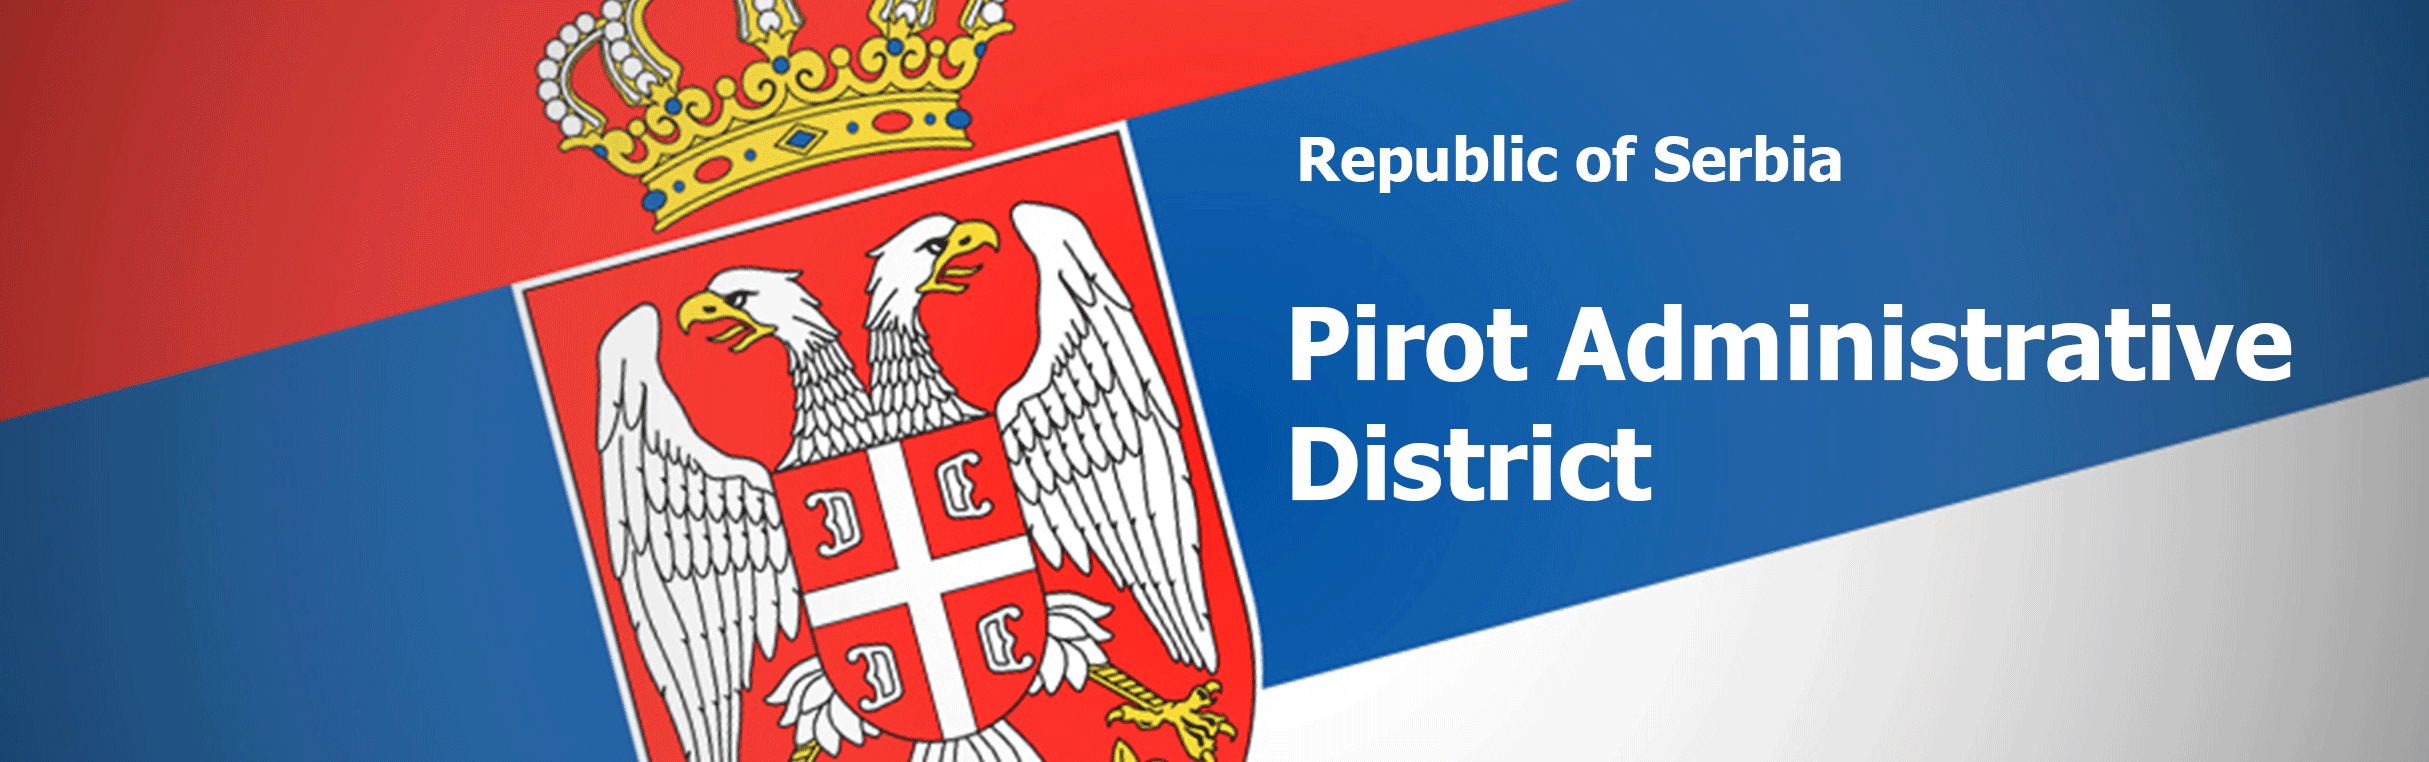 Pirot Administrative District